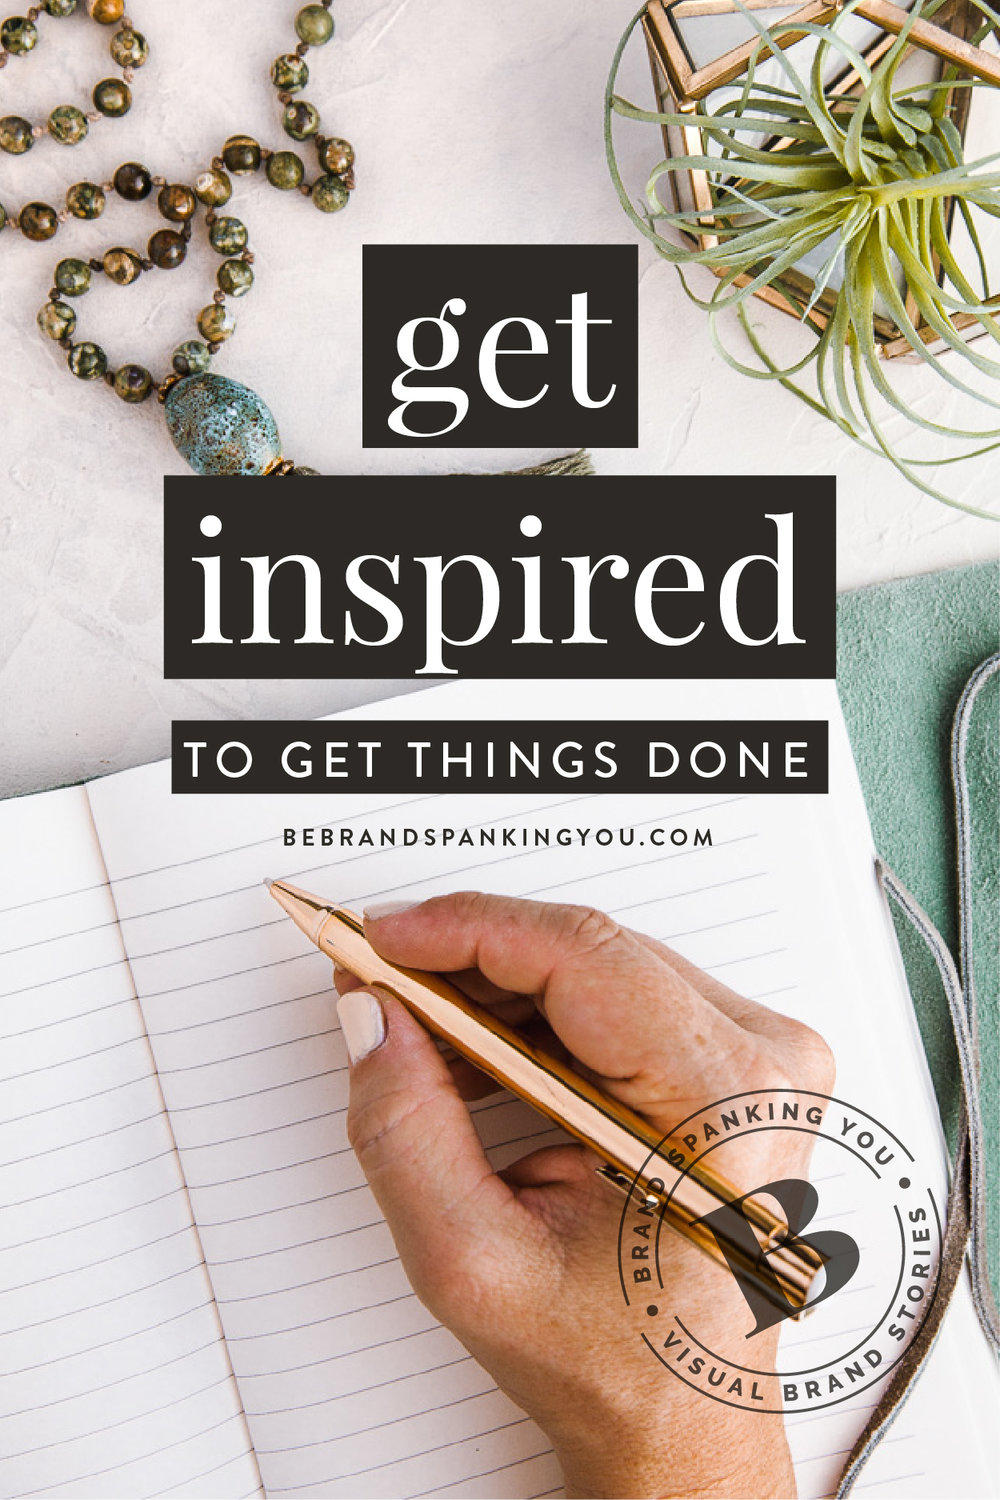 Ever feel like you just can't find the motivation to do the things you know you should be doing in your business? You're not alone. Find out how you can shift your mindset to one of Inspired Action and start getting more done (while having fun) than ever before!